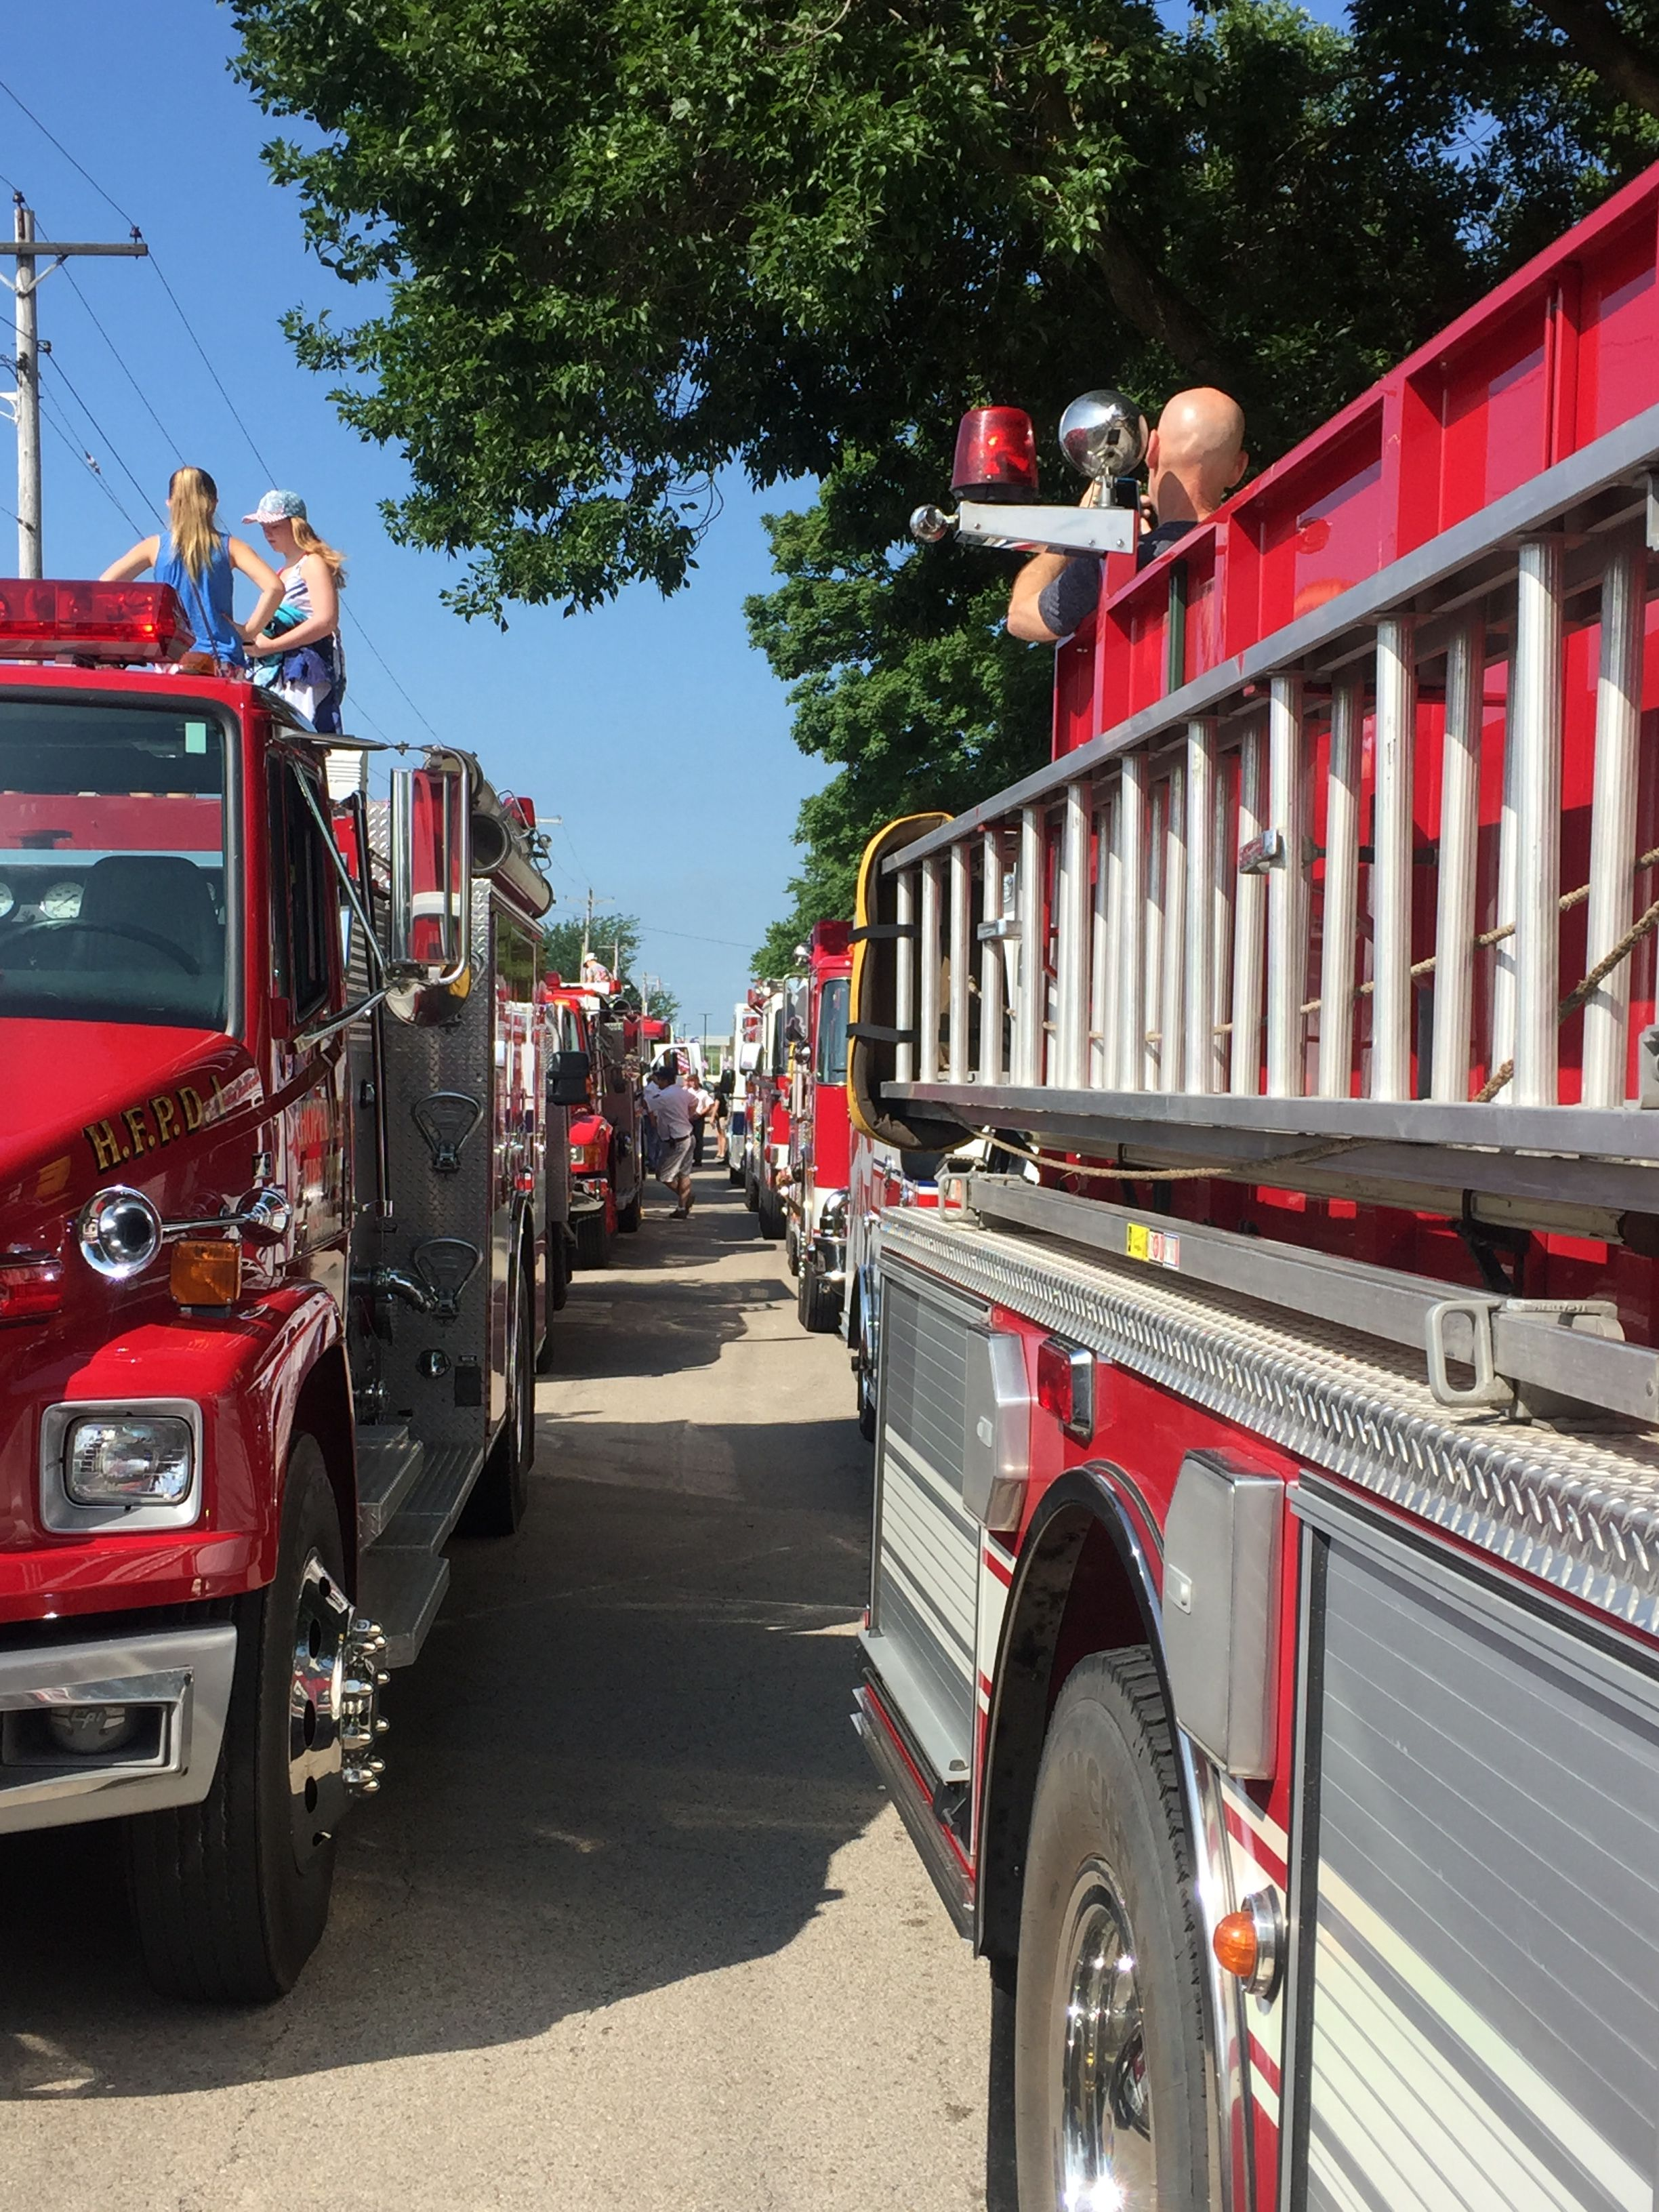 Hopedale's Annual 4th of July Celebration